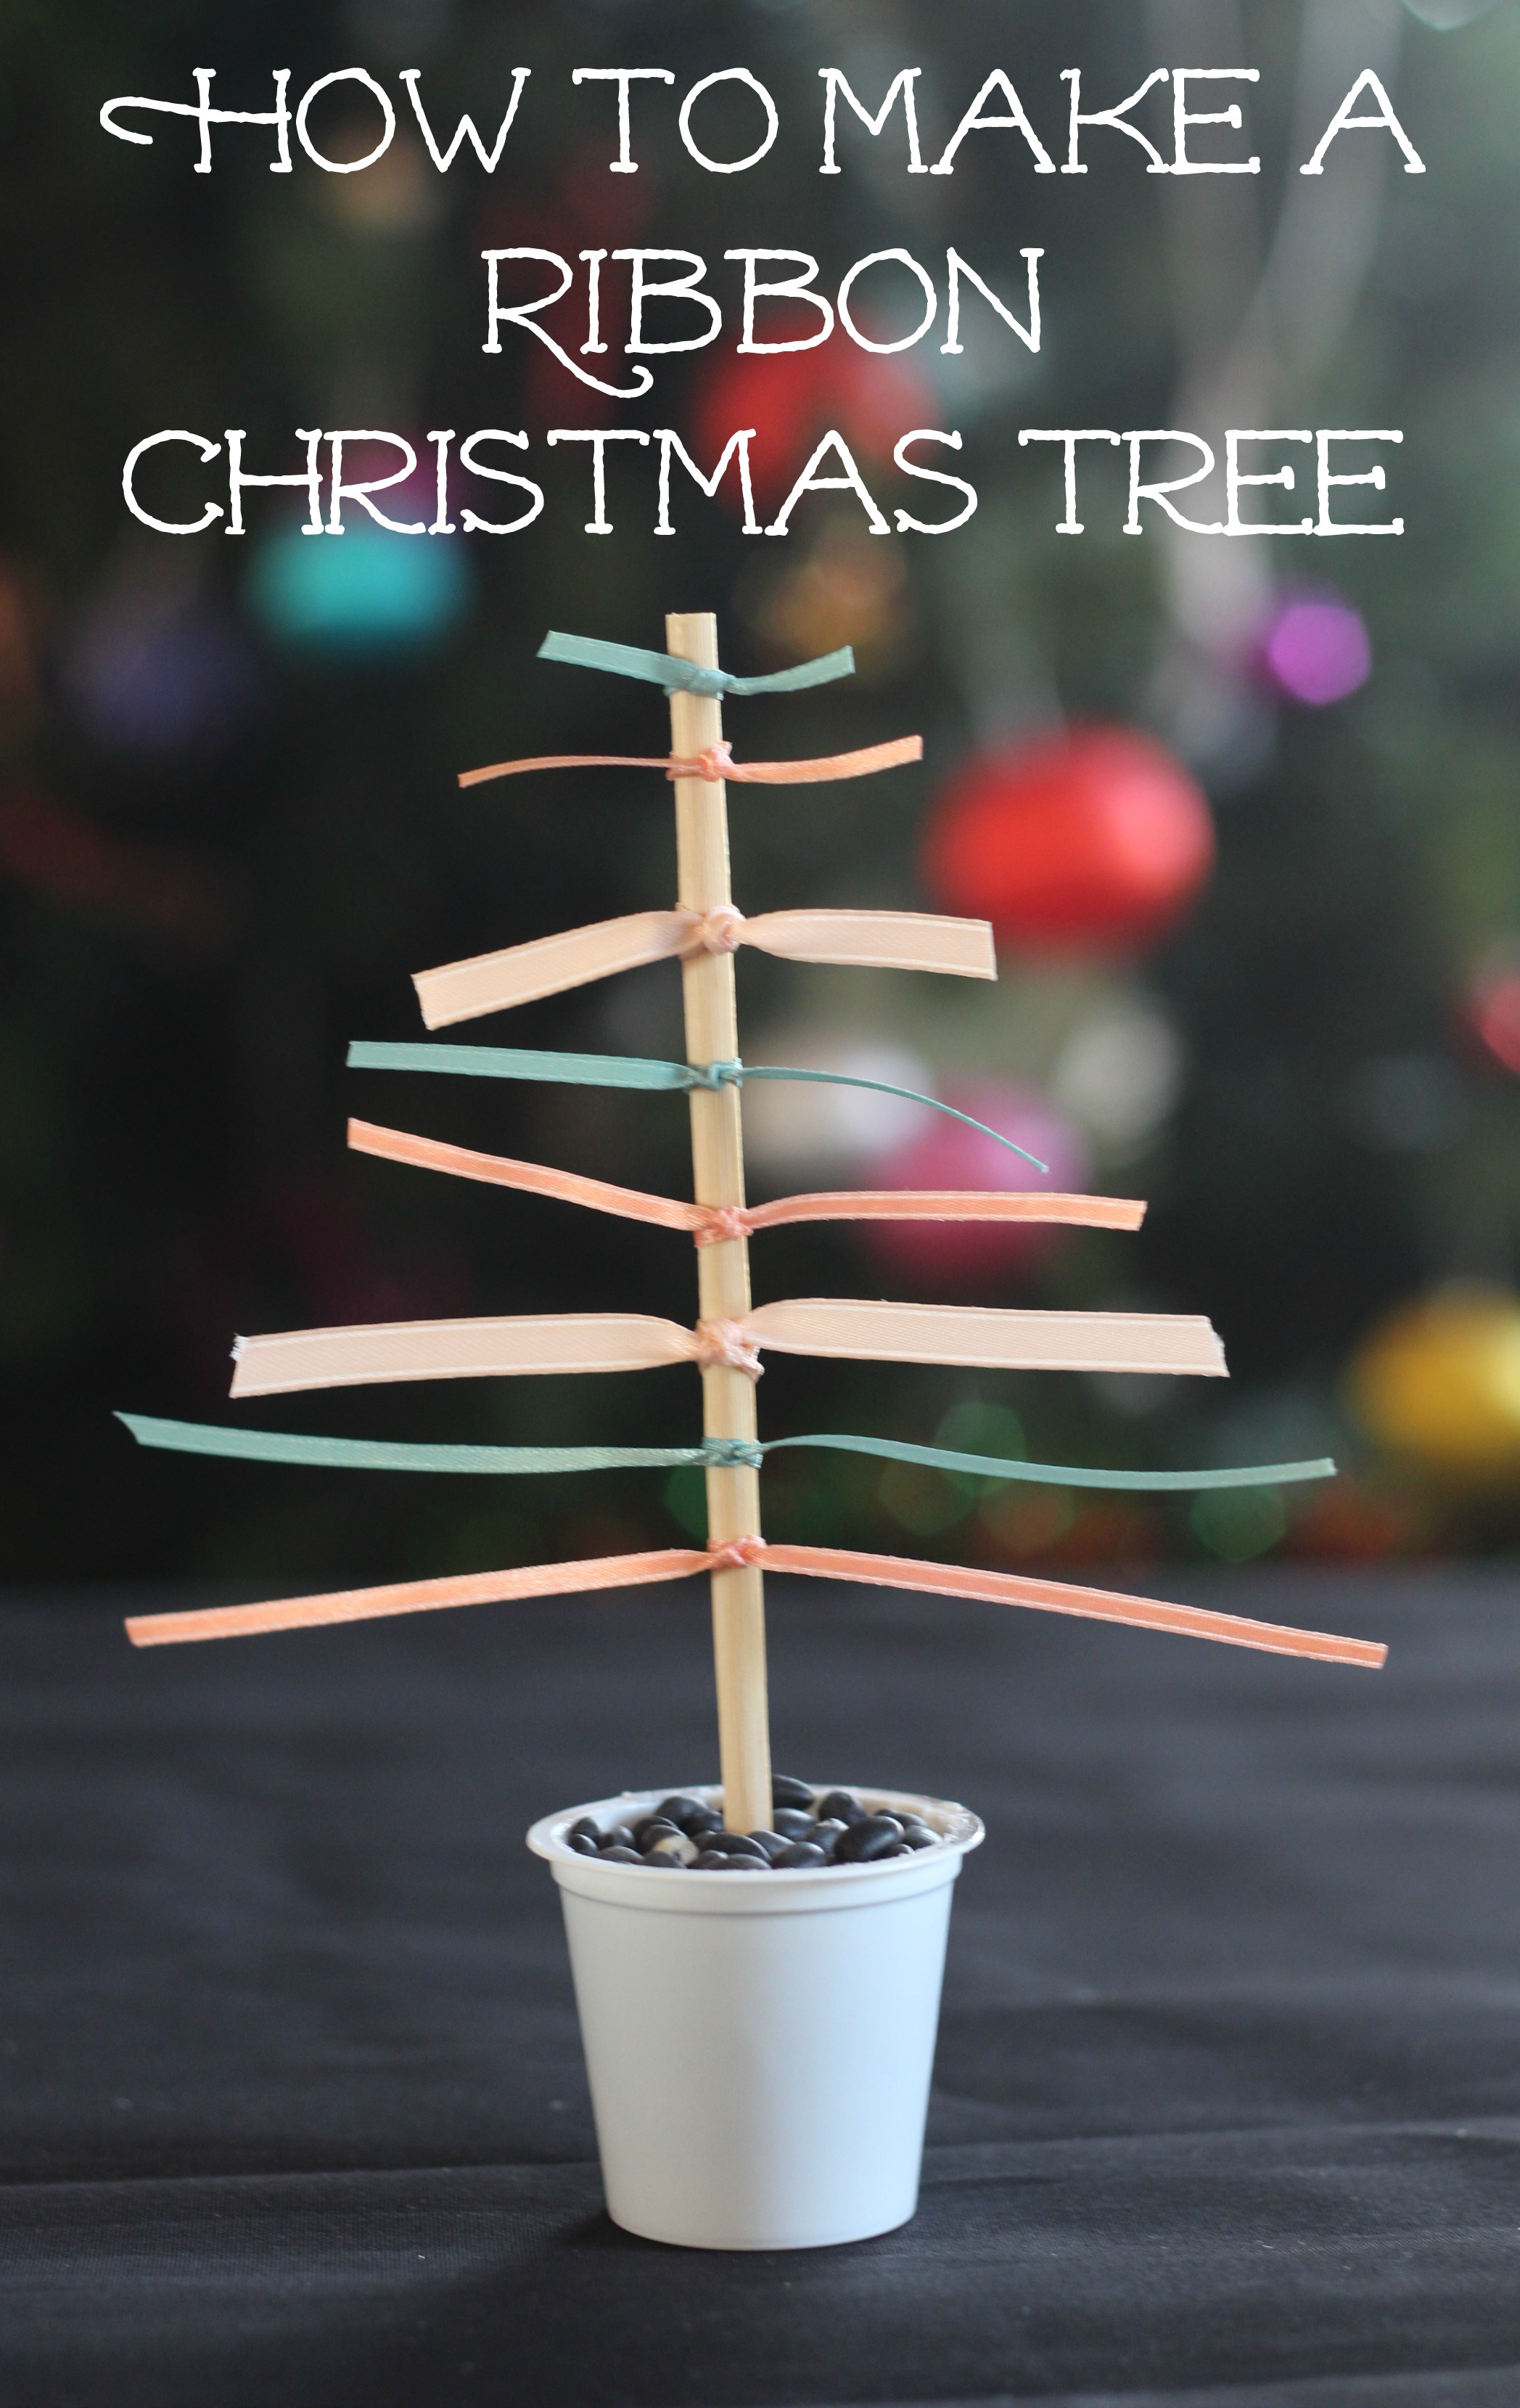 How to Make a Ribbon Christmas Tree